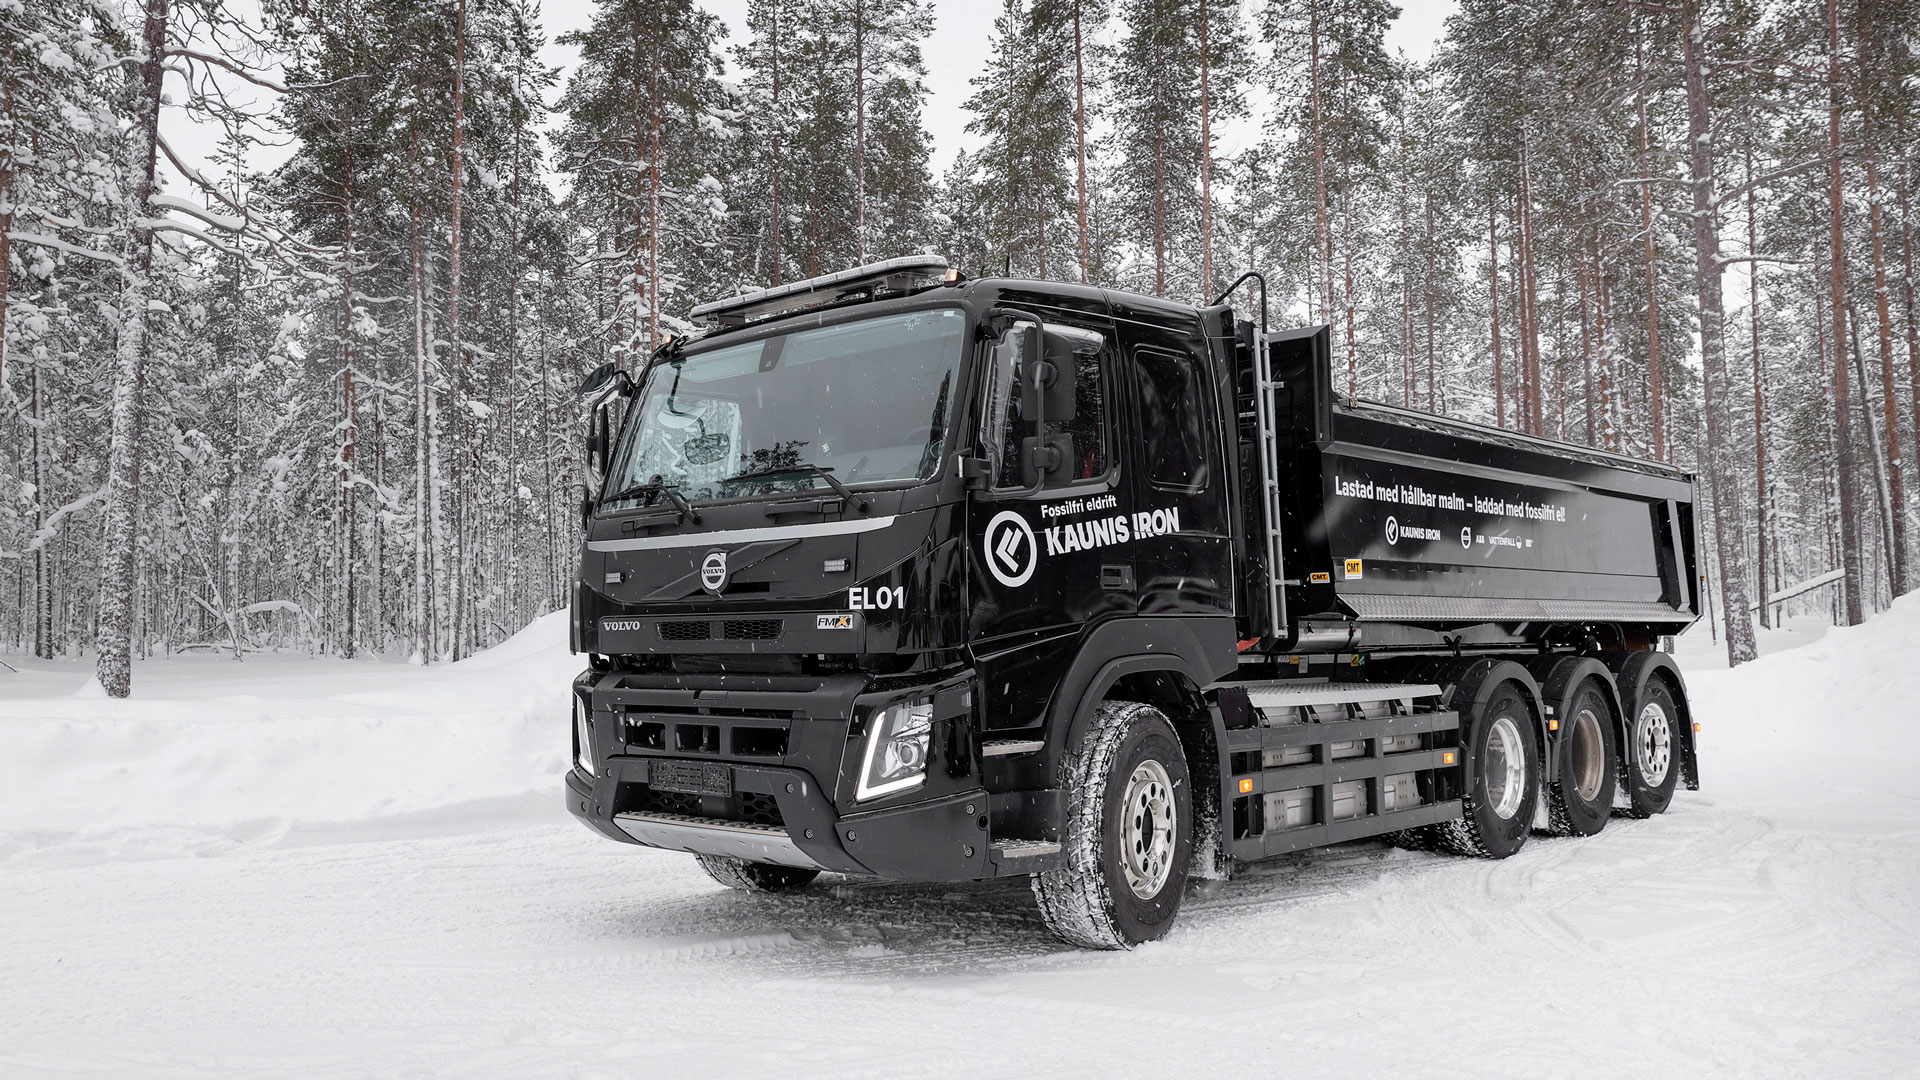 A Volvo electric truck tested at the Kaunis Iron mining company.